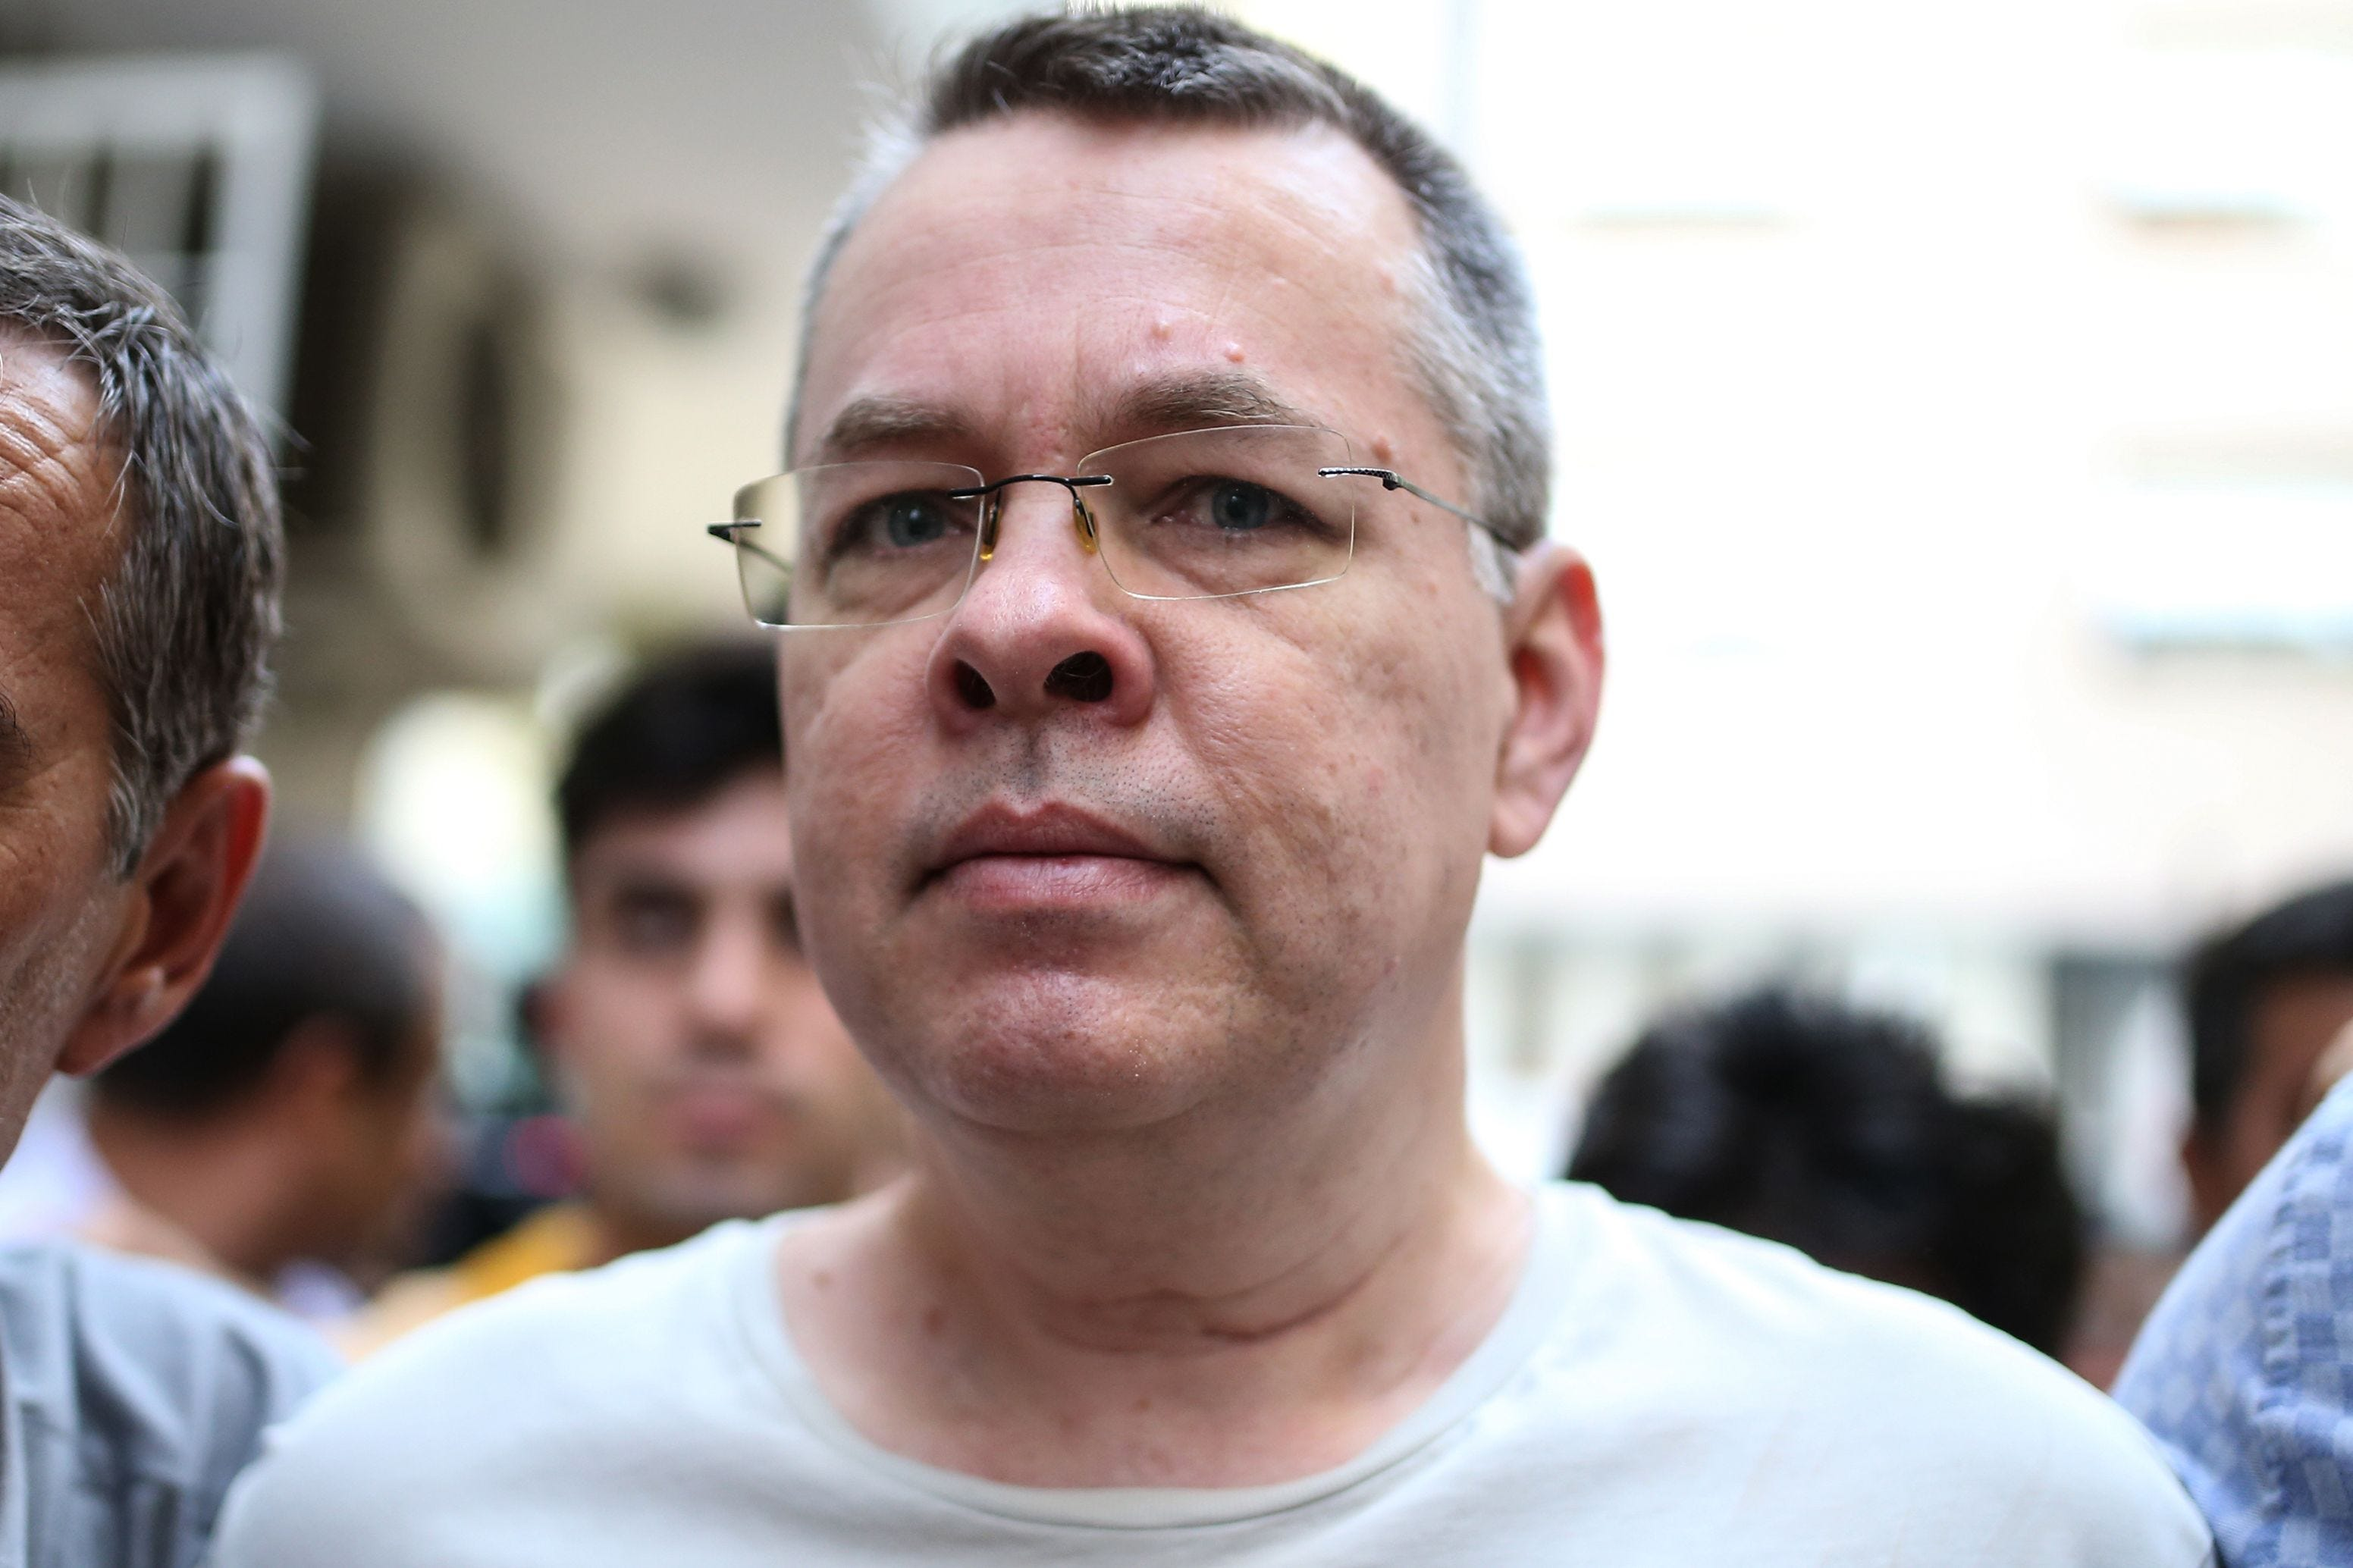 Trump officials hopeful that detained American pastor Andrew Brunson will be freed soon